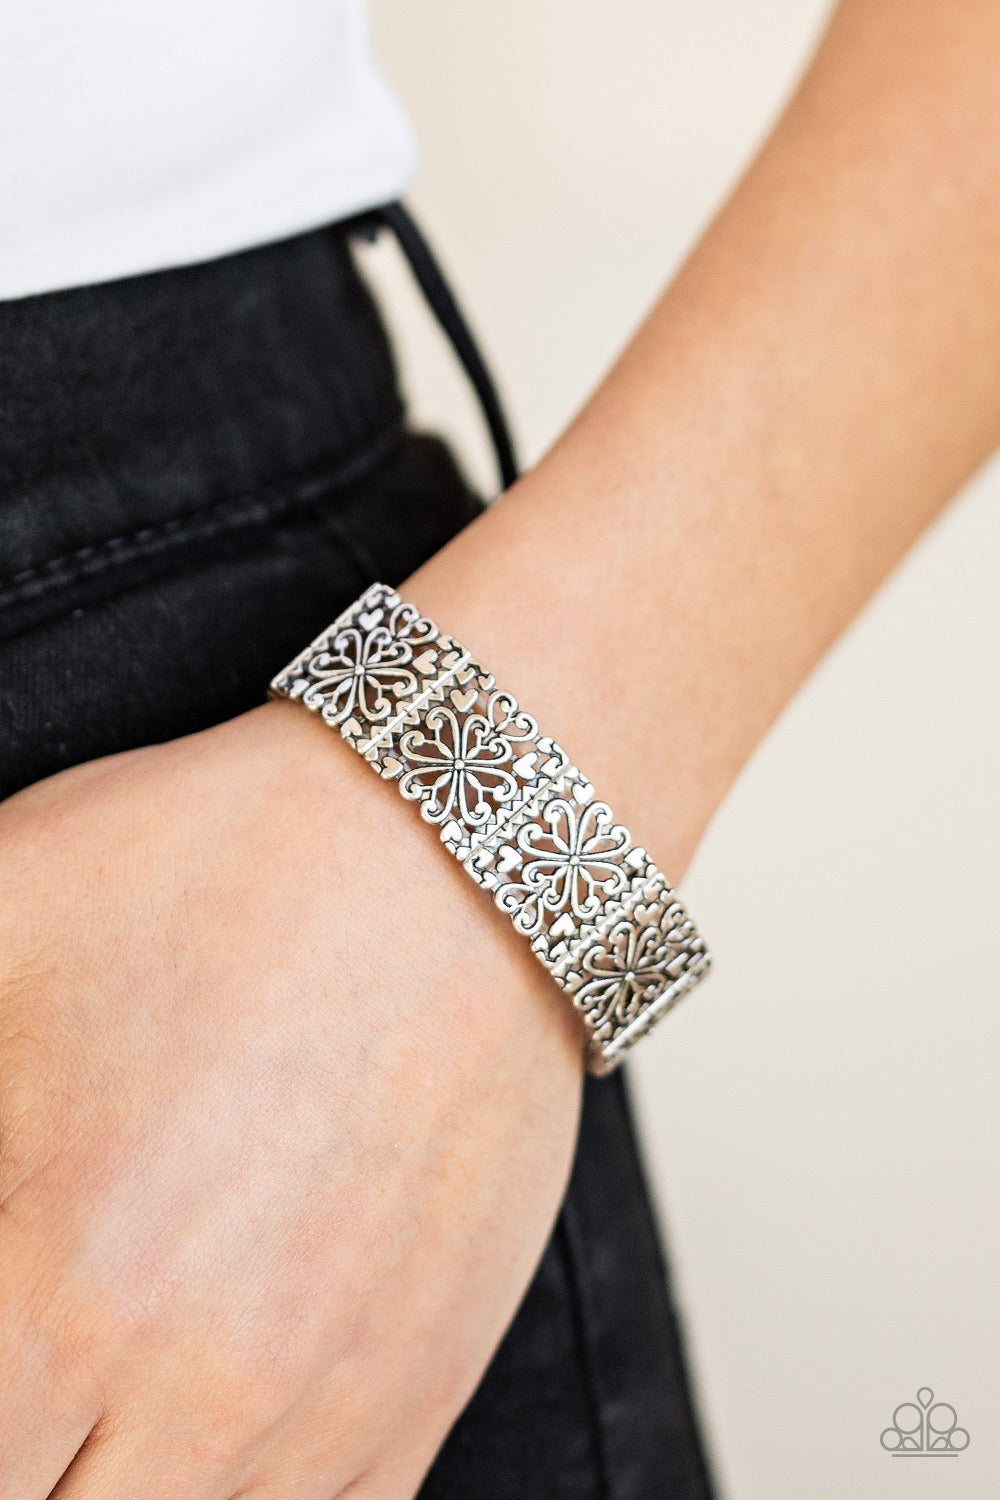 Summer Scandal Silver Paparazzi Bracelet - JewelTonez Jewelry